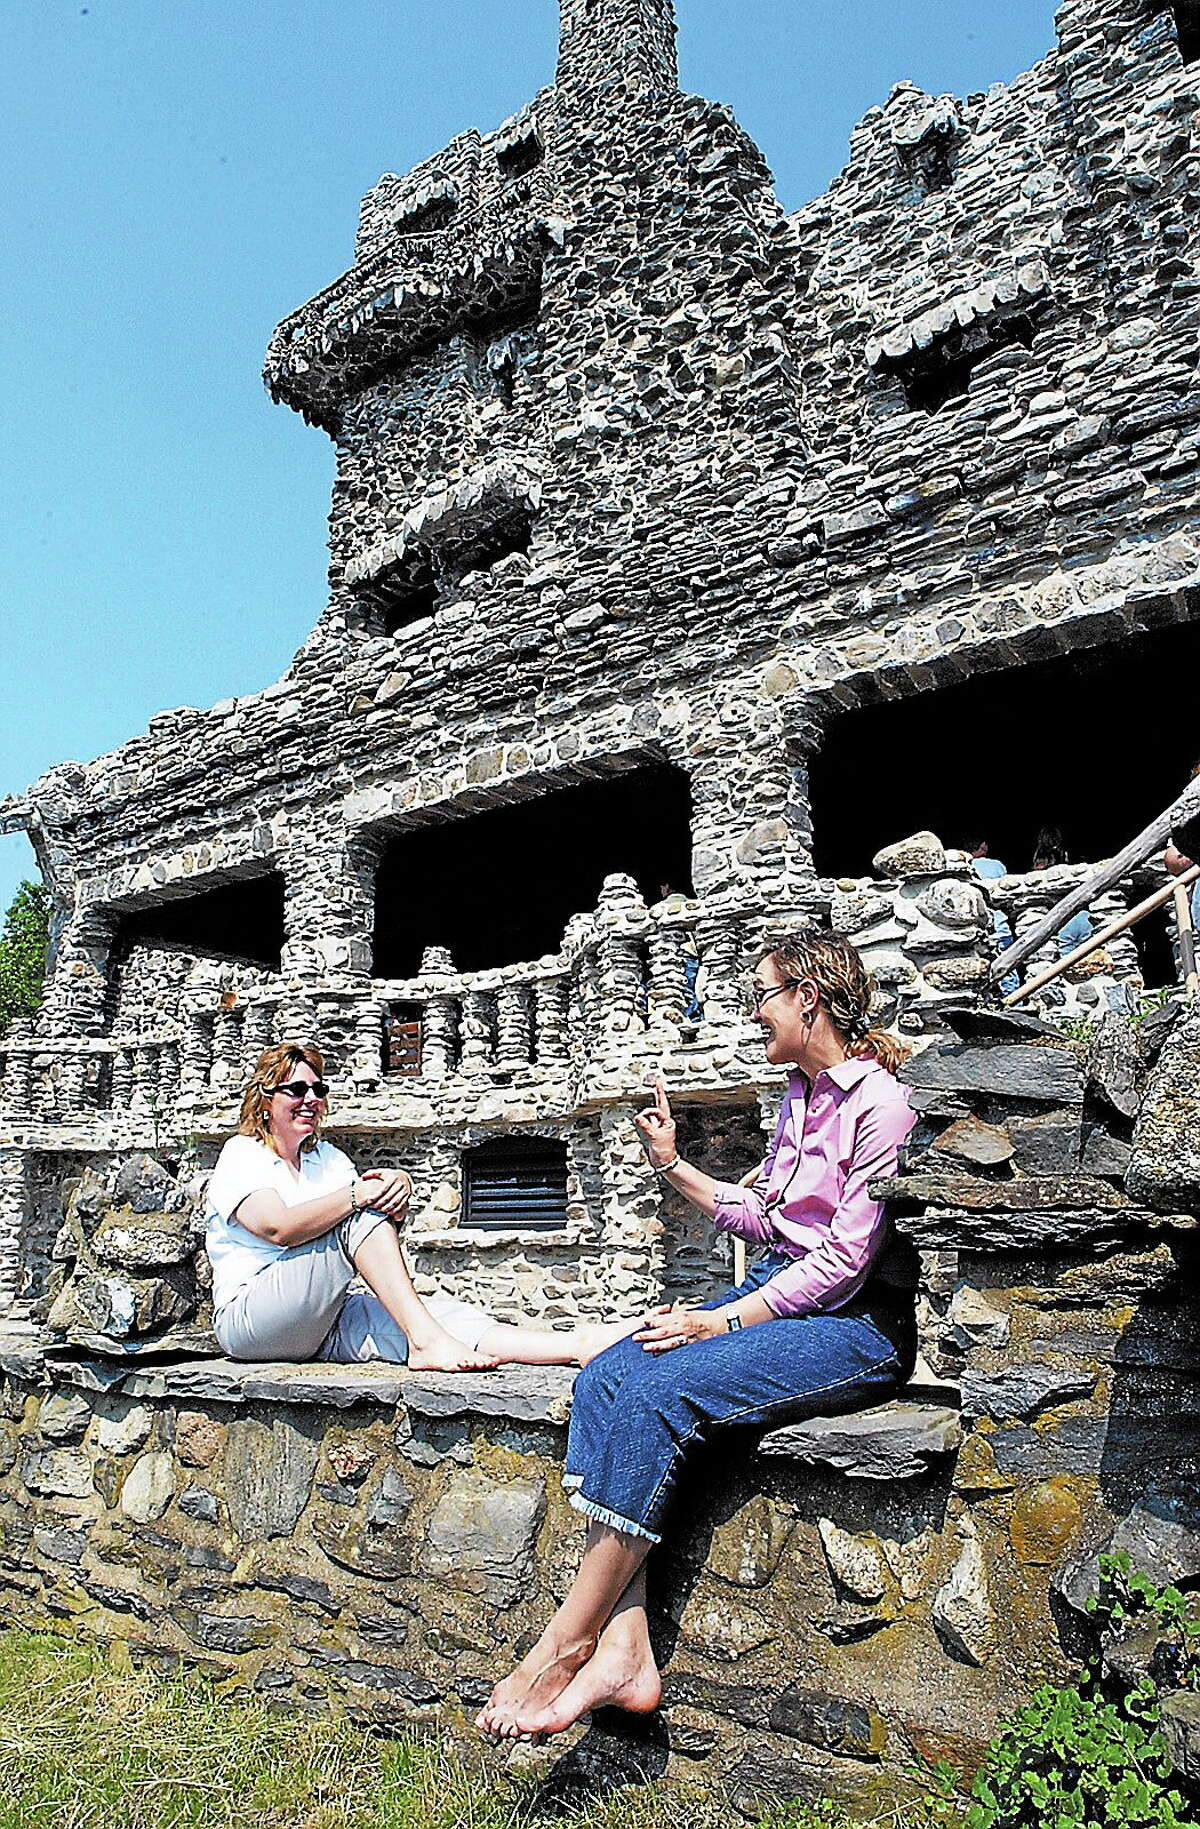 Carol Woltersdorf of West Hartford and Allicia Flaherty of Glastonbury wait for their turn to view the inside of the Gillette Castle in East Haddam.